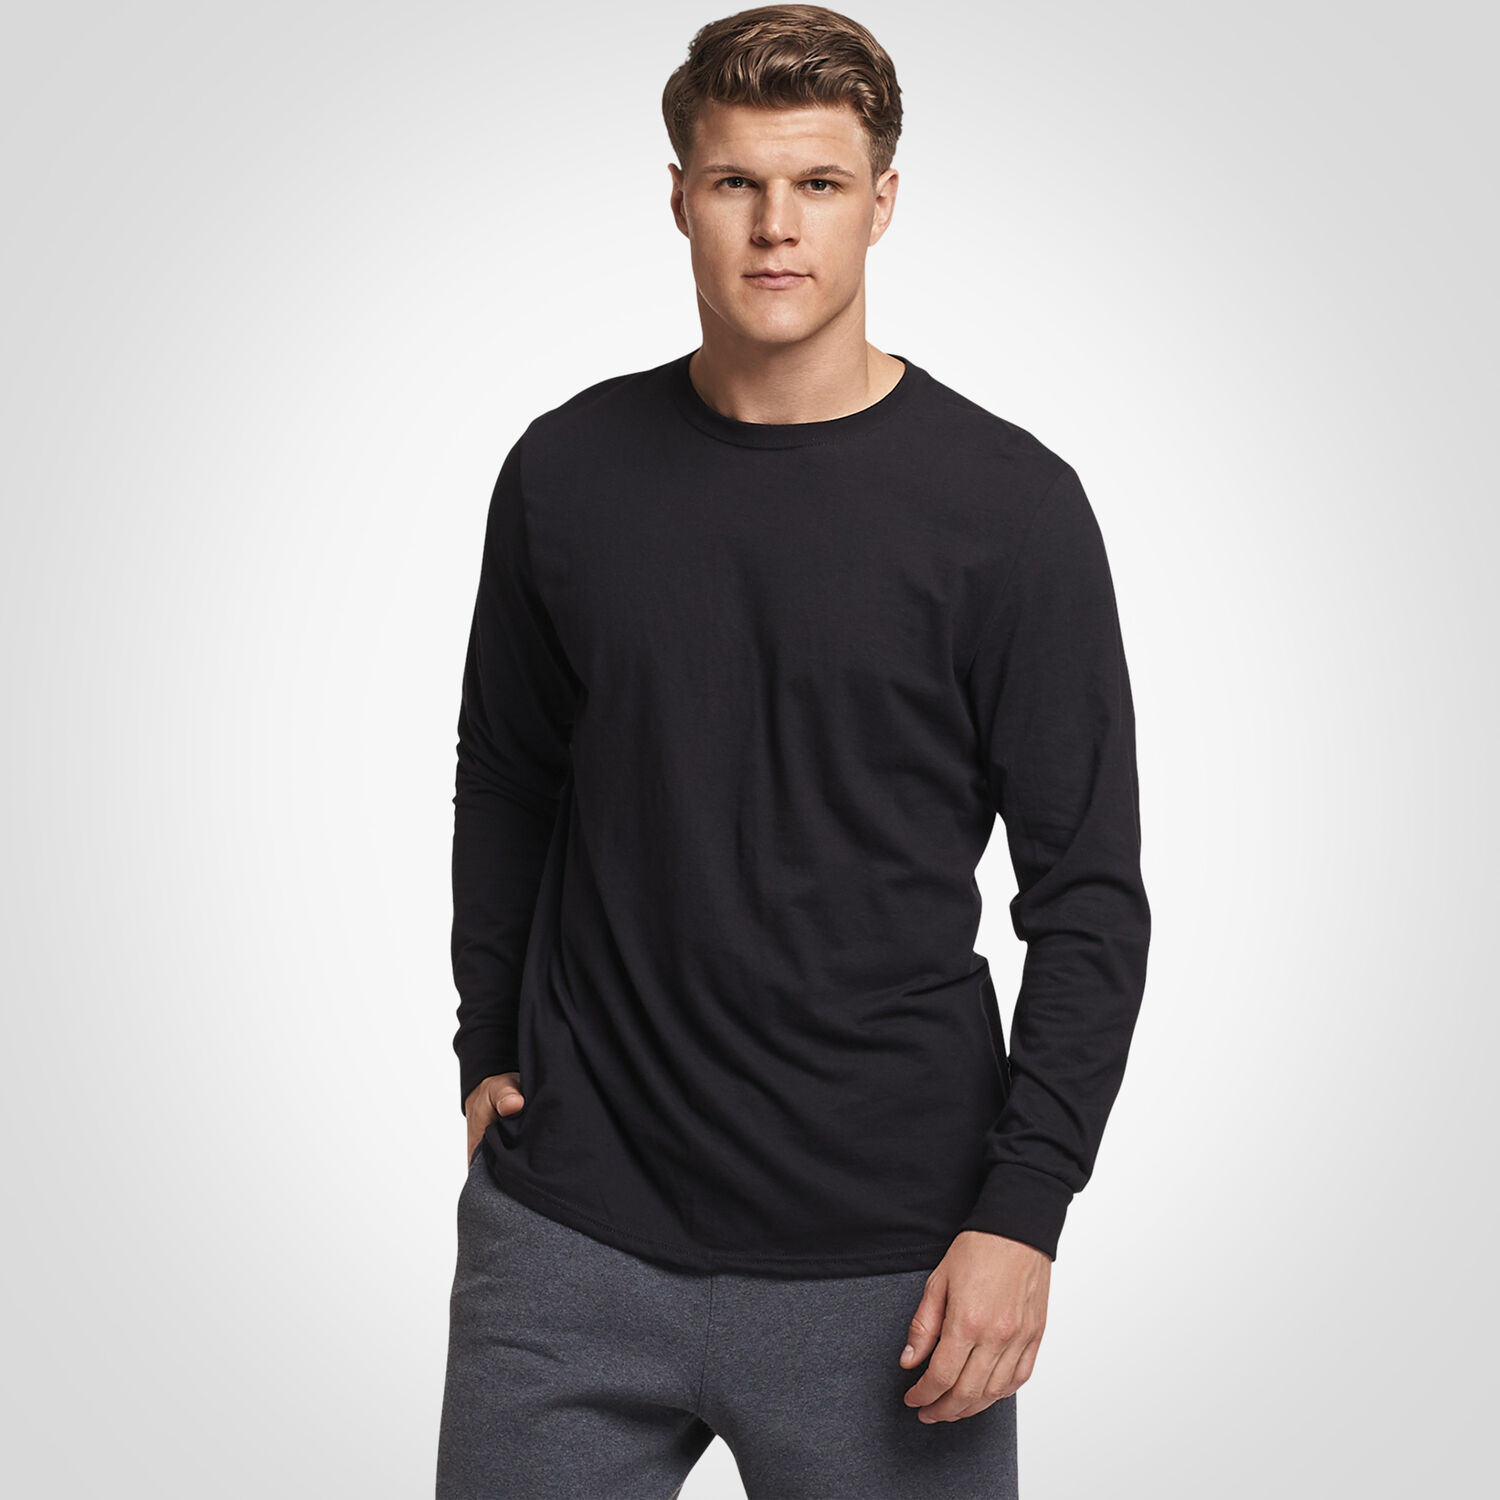 0c0bfe28e630 Men's Essential Long Sleeve Tee - Russell US | Russell Athletic